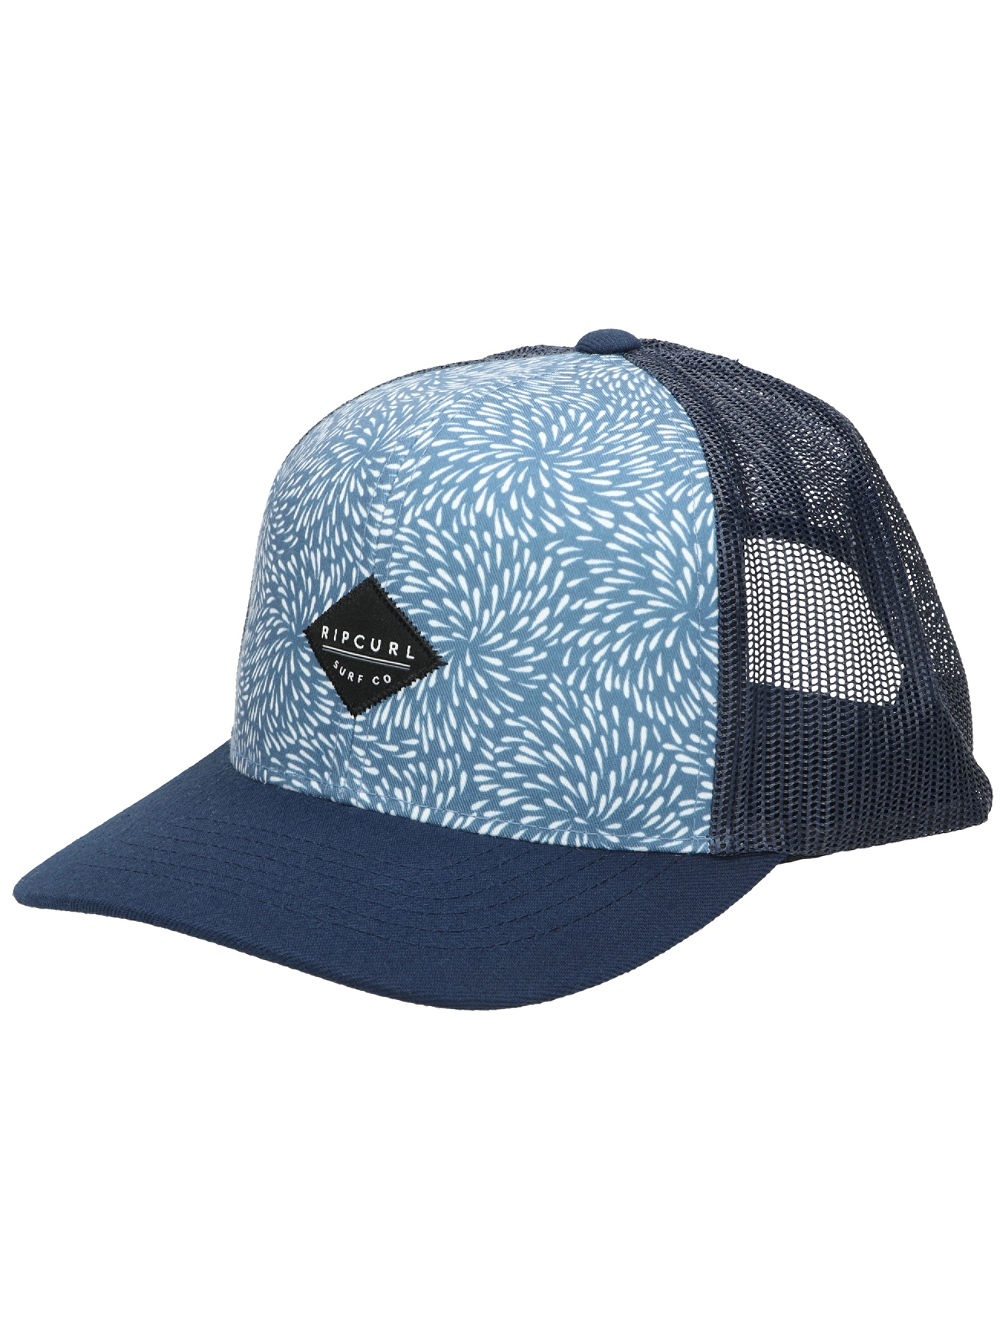 24d3a4a970d4f6 Buy Rip Curl Yardage Trucker Cap online at Blue Tomato